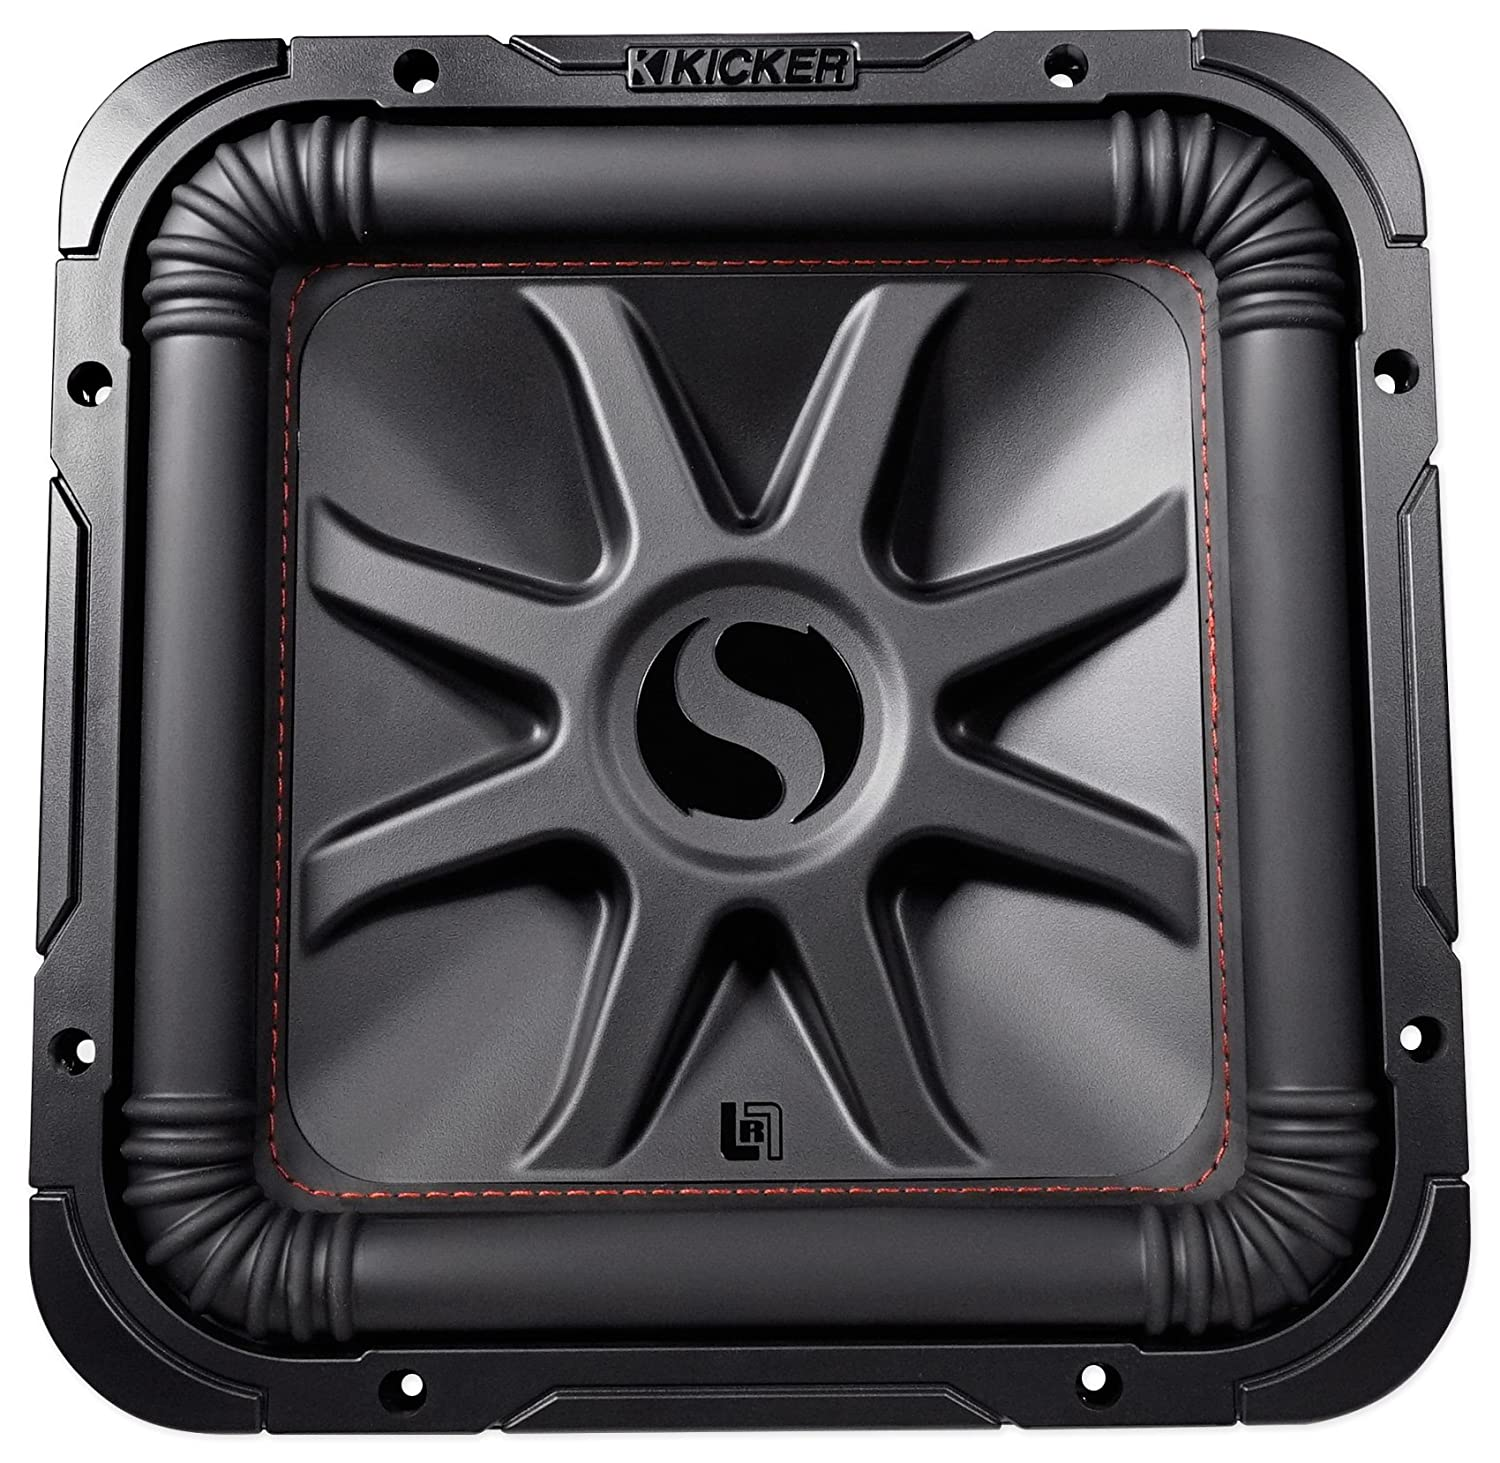 2 Kicker 45l7r122 12 1200w L7r Solo Baric Subwoofers 3000watt 0awg 0 Gauge Subwoofer Amp Amplifier Wiring Kit 150amp Anl Bedlined Sub Box Car Electronics